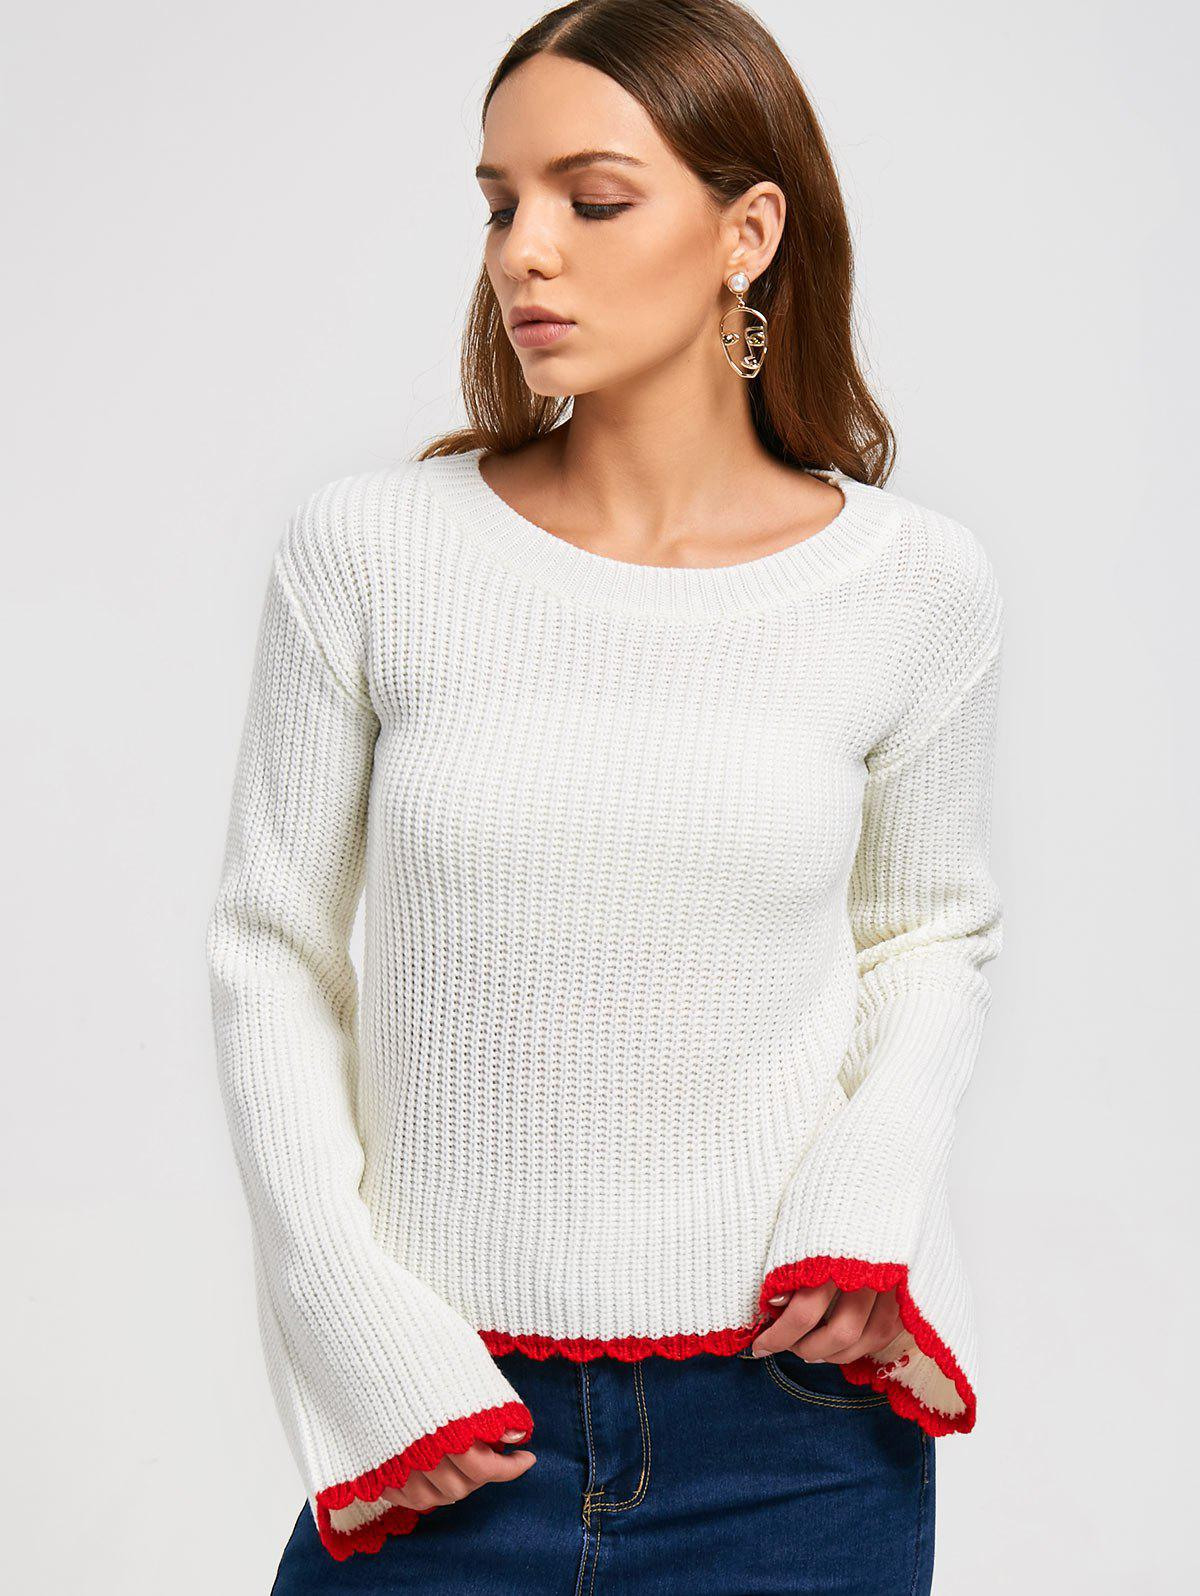 Two Tone Pullover Sweater 224928201